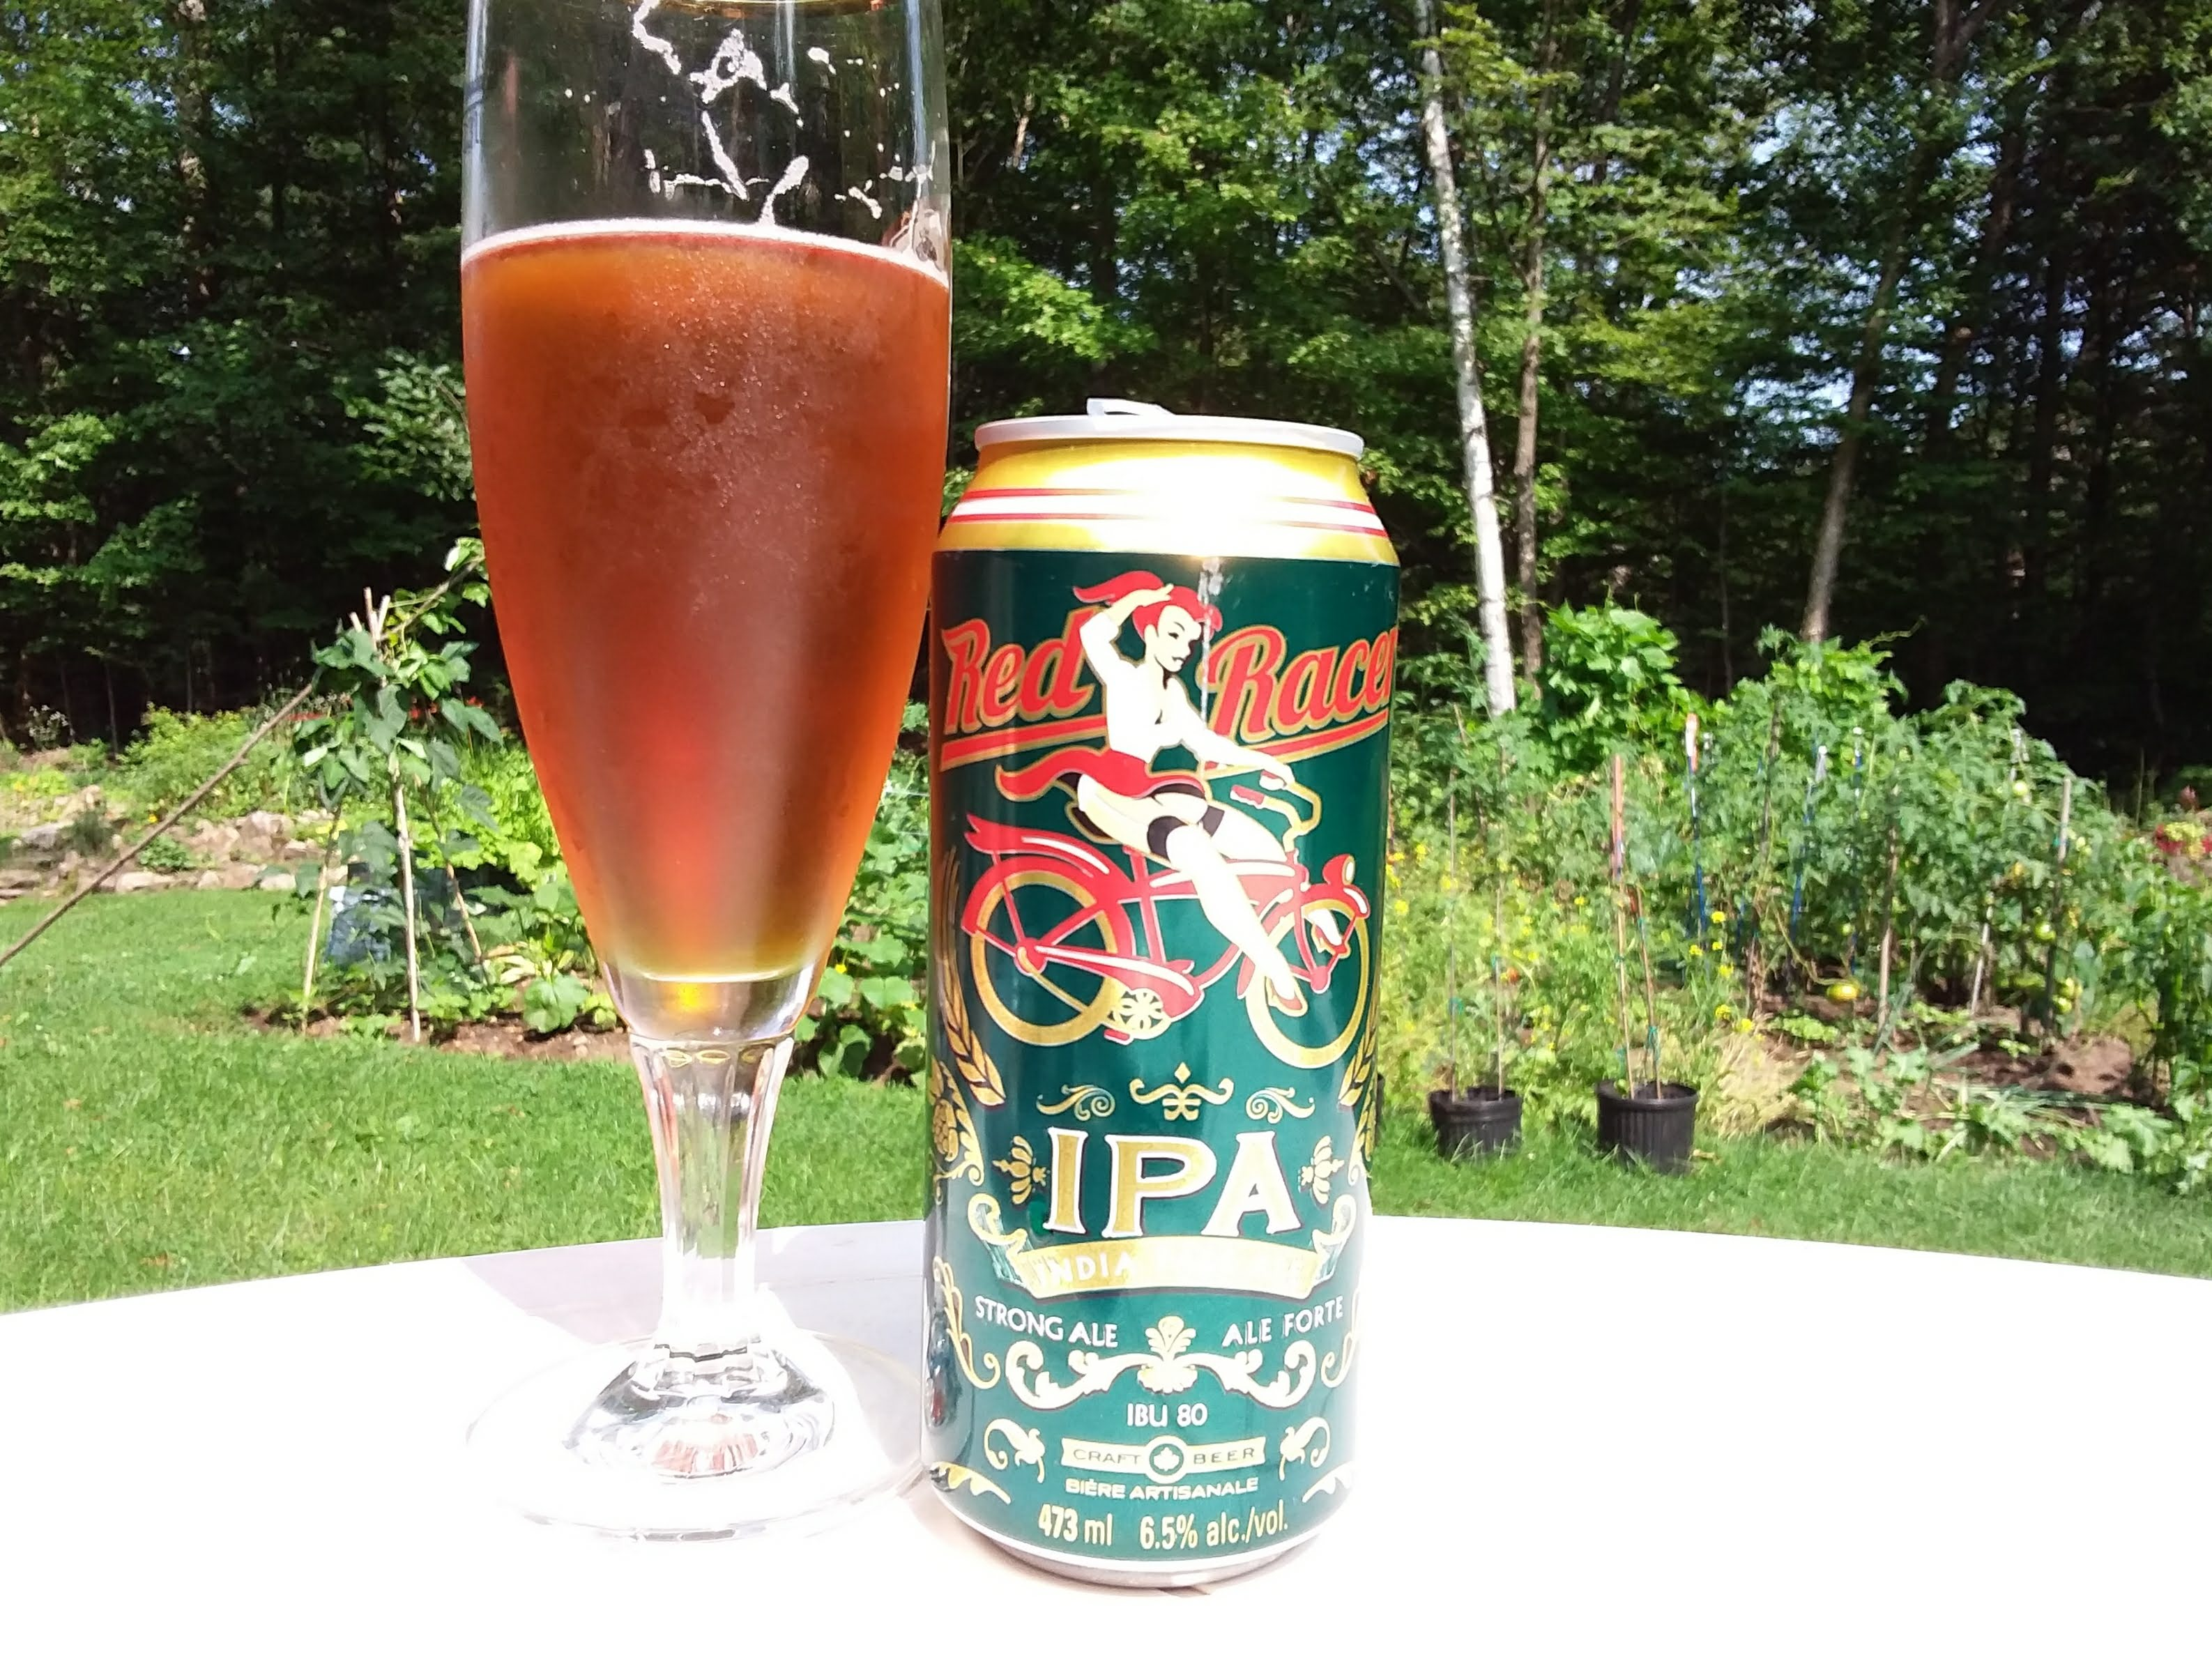 カナダRed Racer IPA